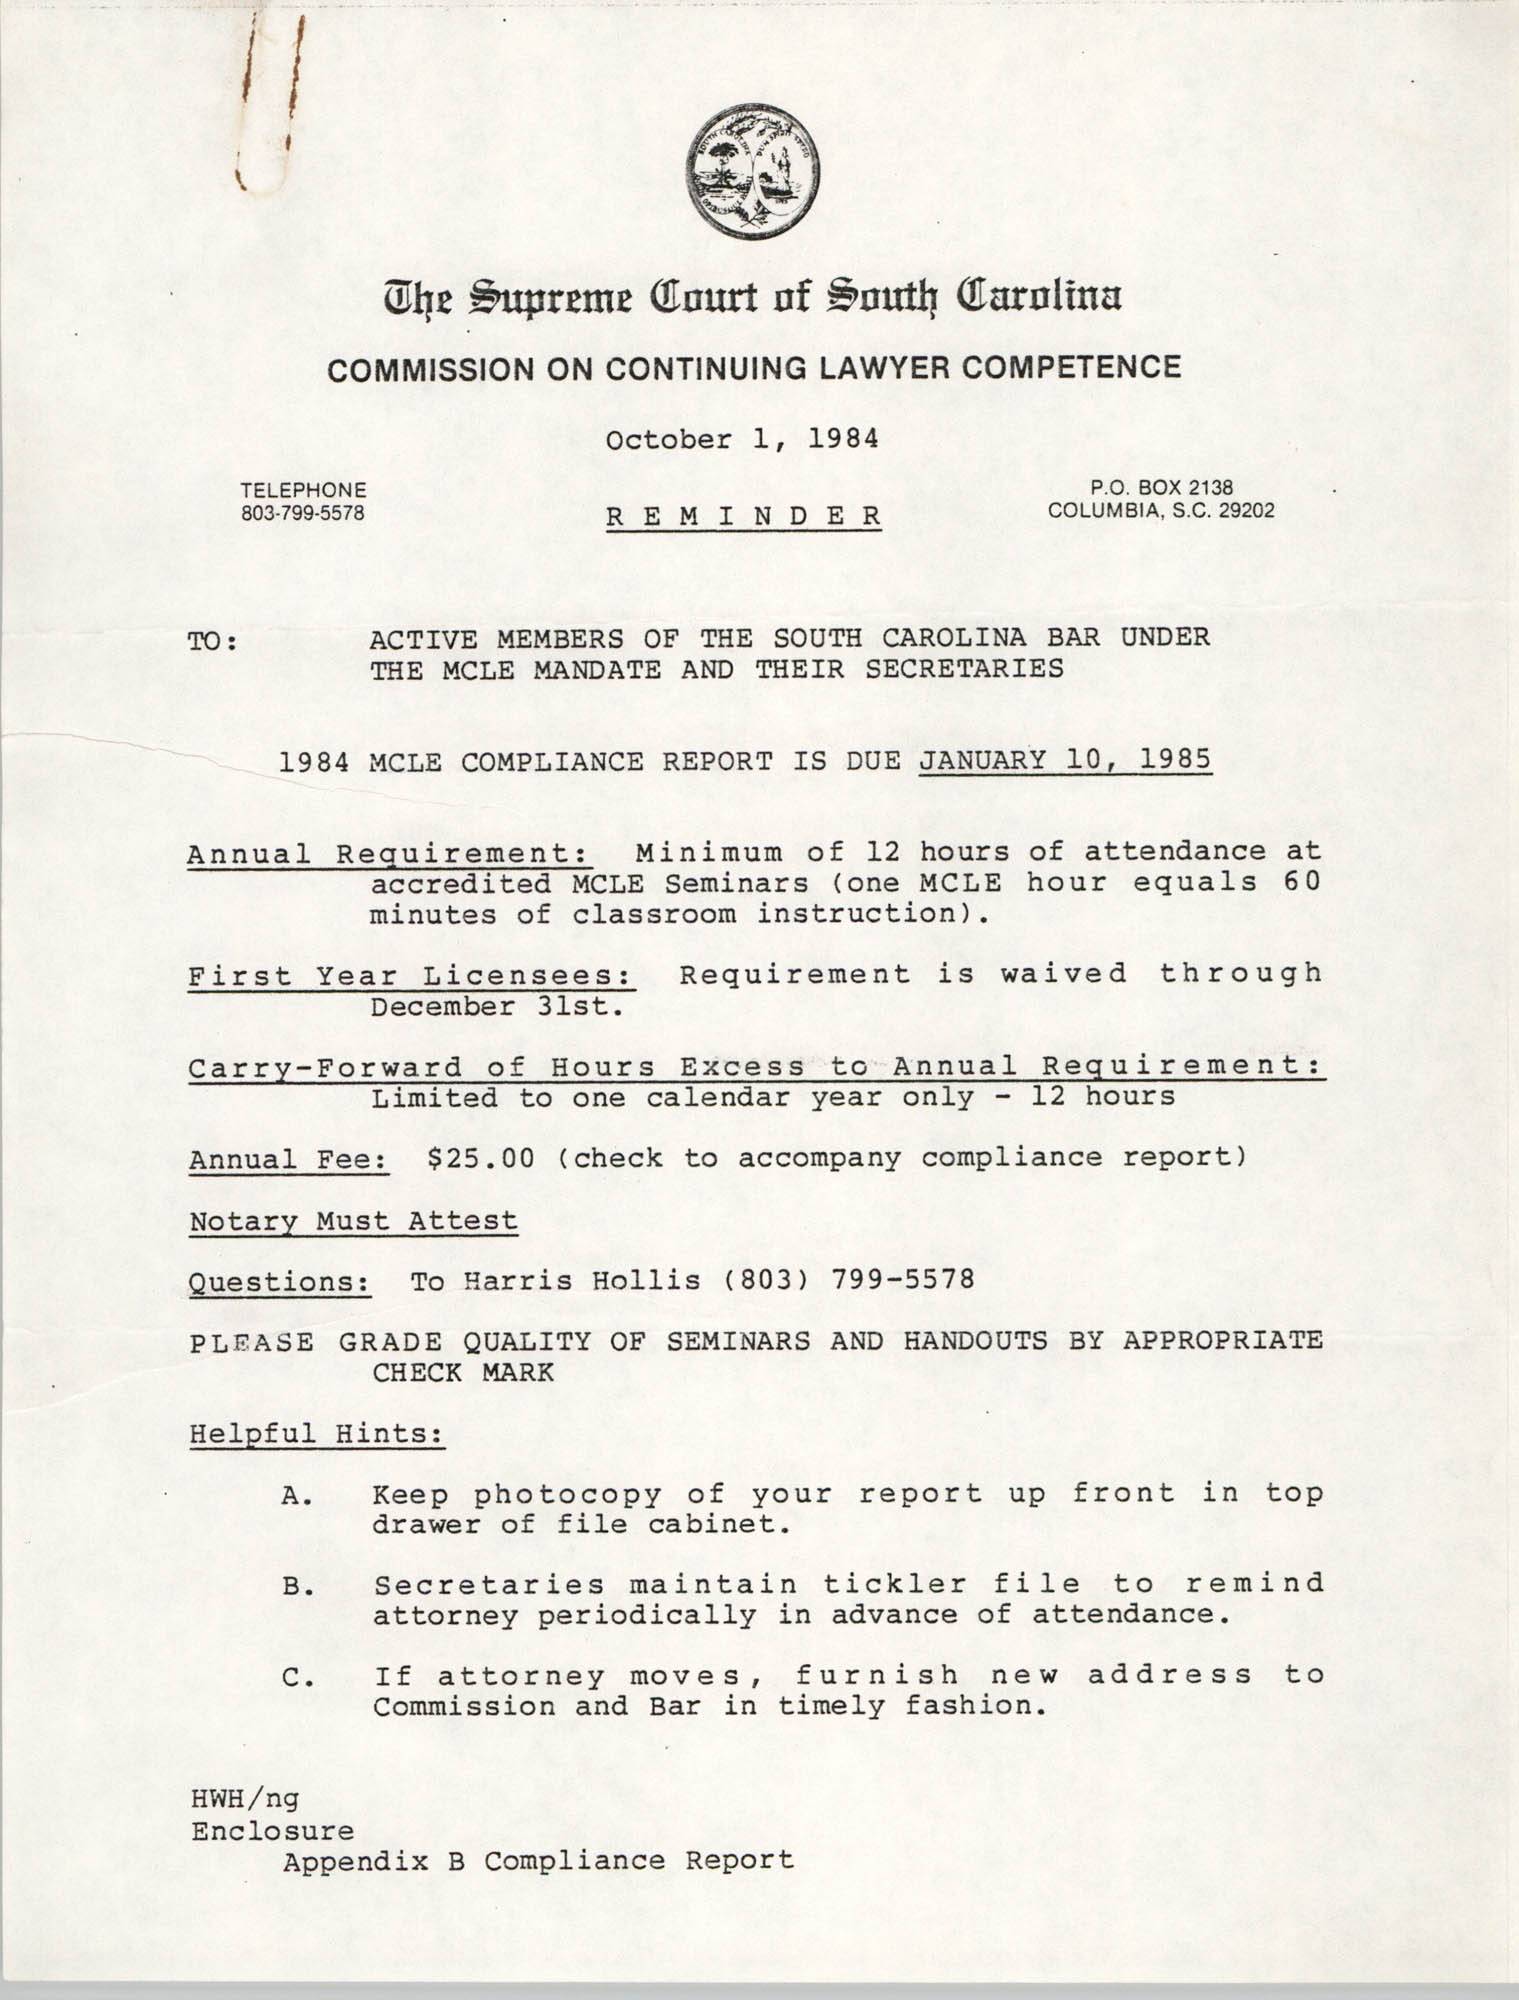 The Supreme Court of South Carolina, Commission on Continuing Lawyer Competence, Report of Compliance, 1984